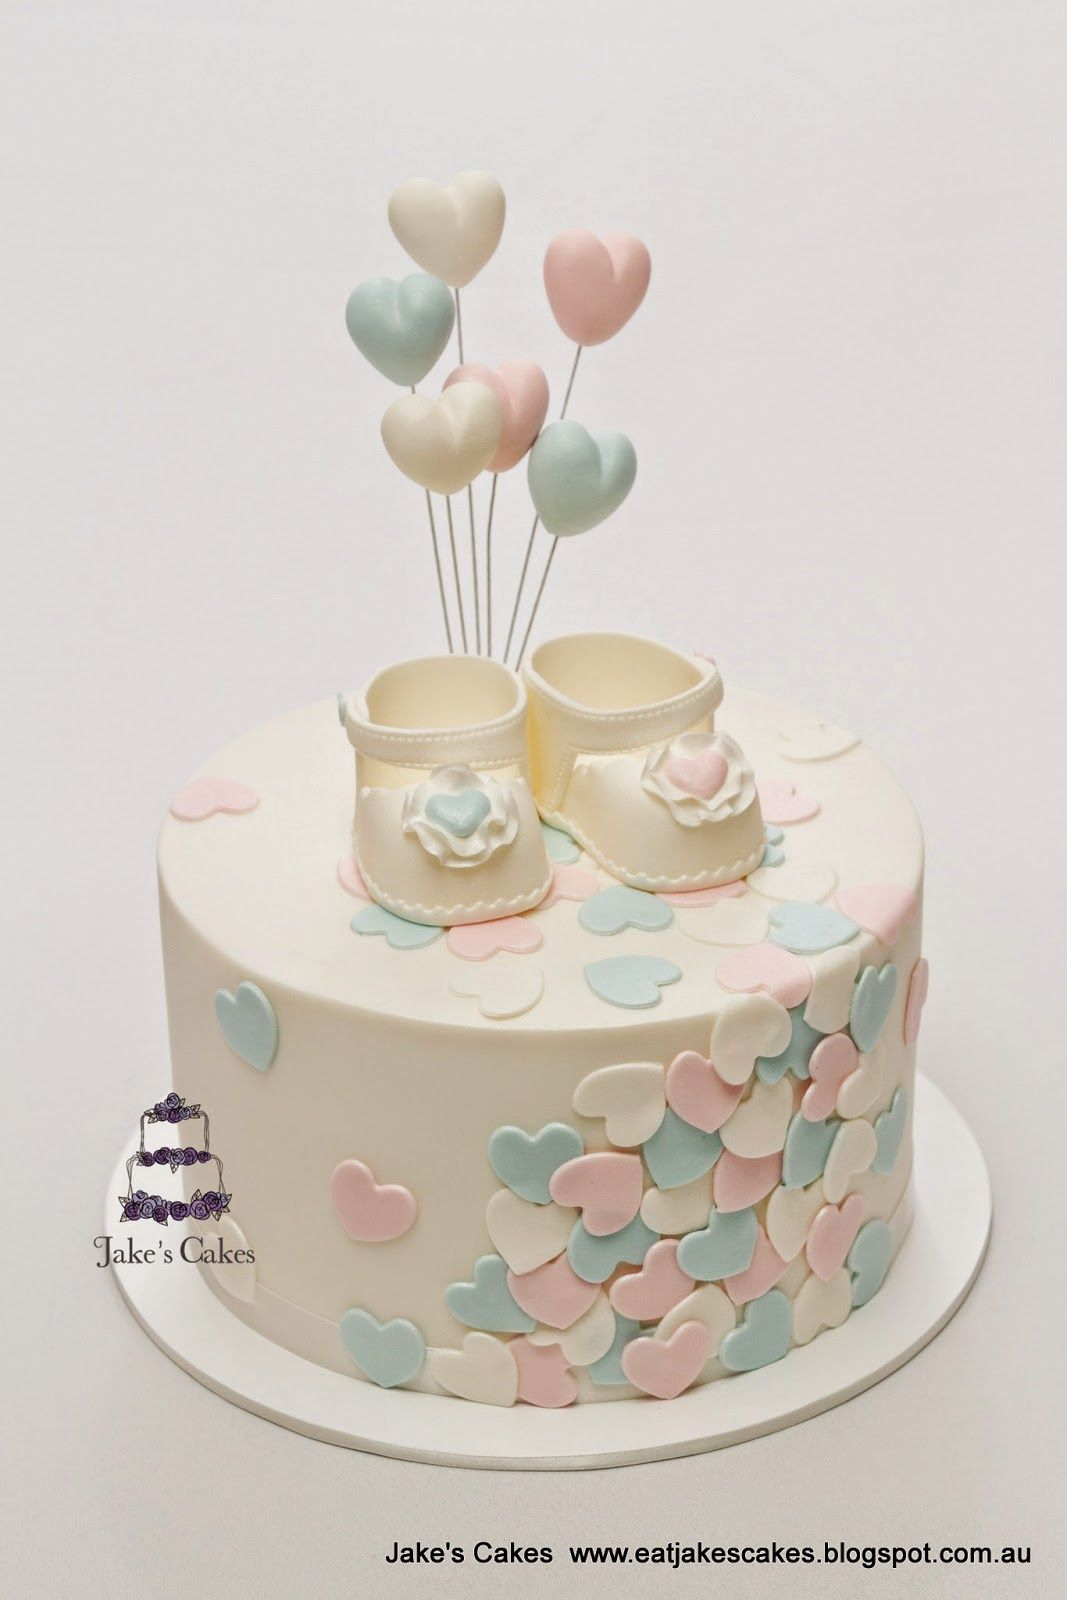 Simple Cake Decorating Ideas For Baby Shower : Best 25+ Simple baby shower cakes ideas on Pinterest ...